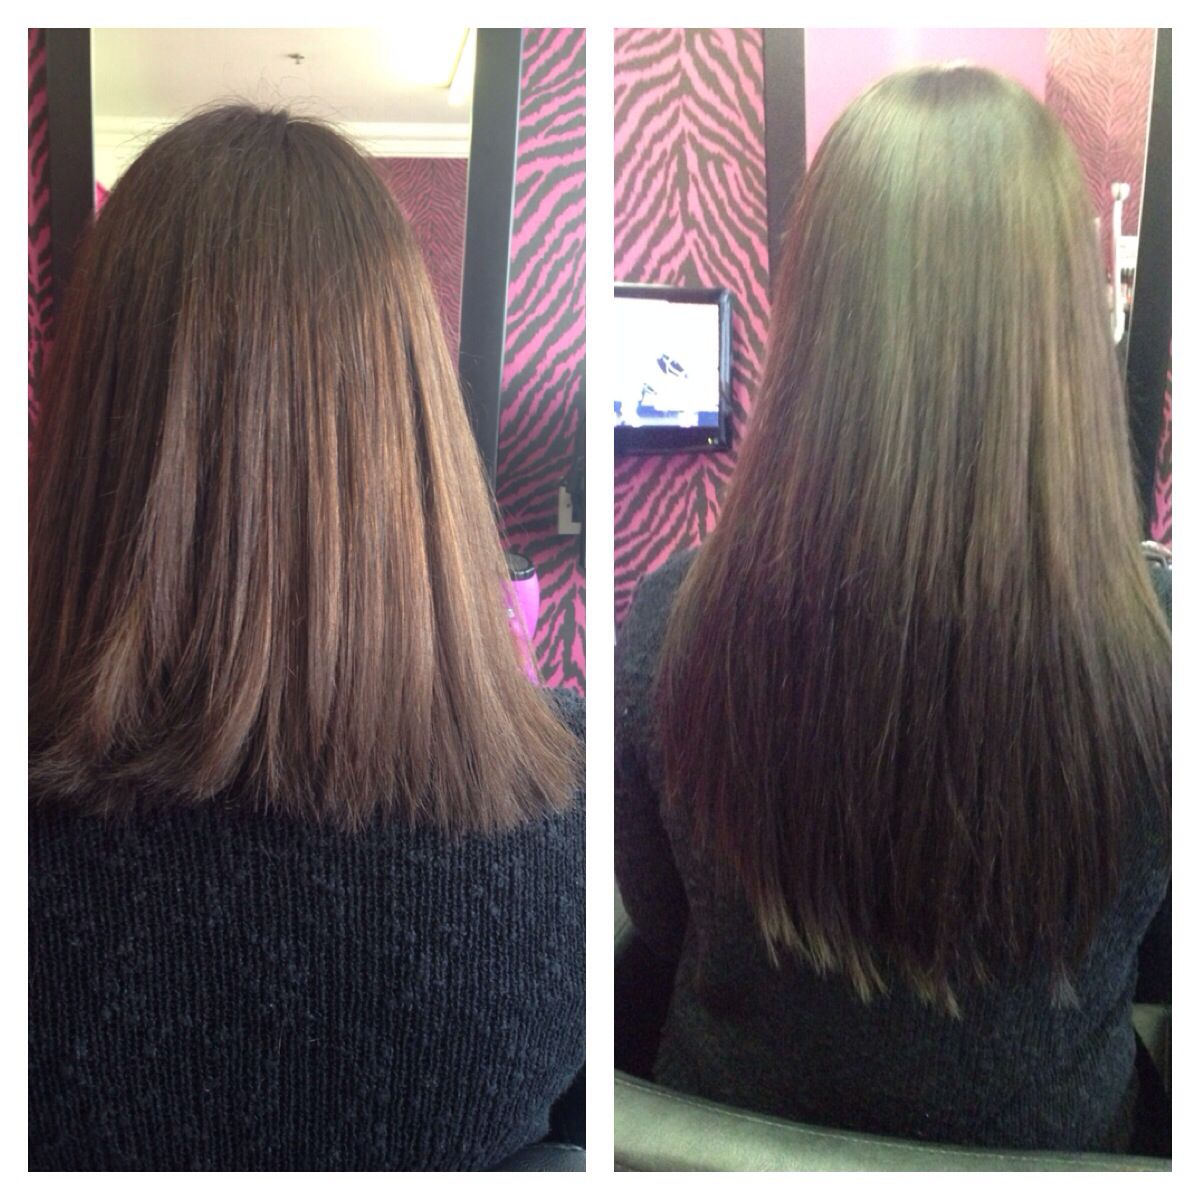 Before after micro ring hair extensions hair before after micro ring hair extensions pmusecretfo Images